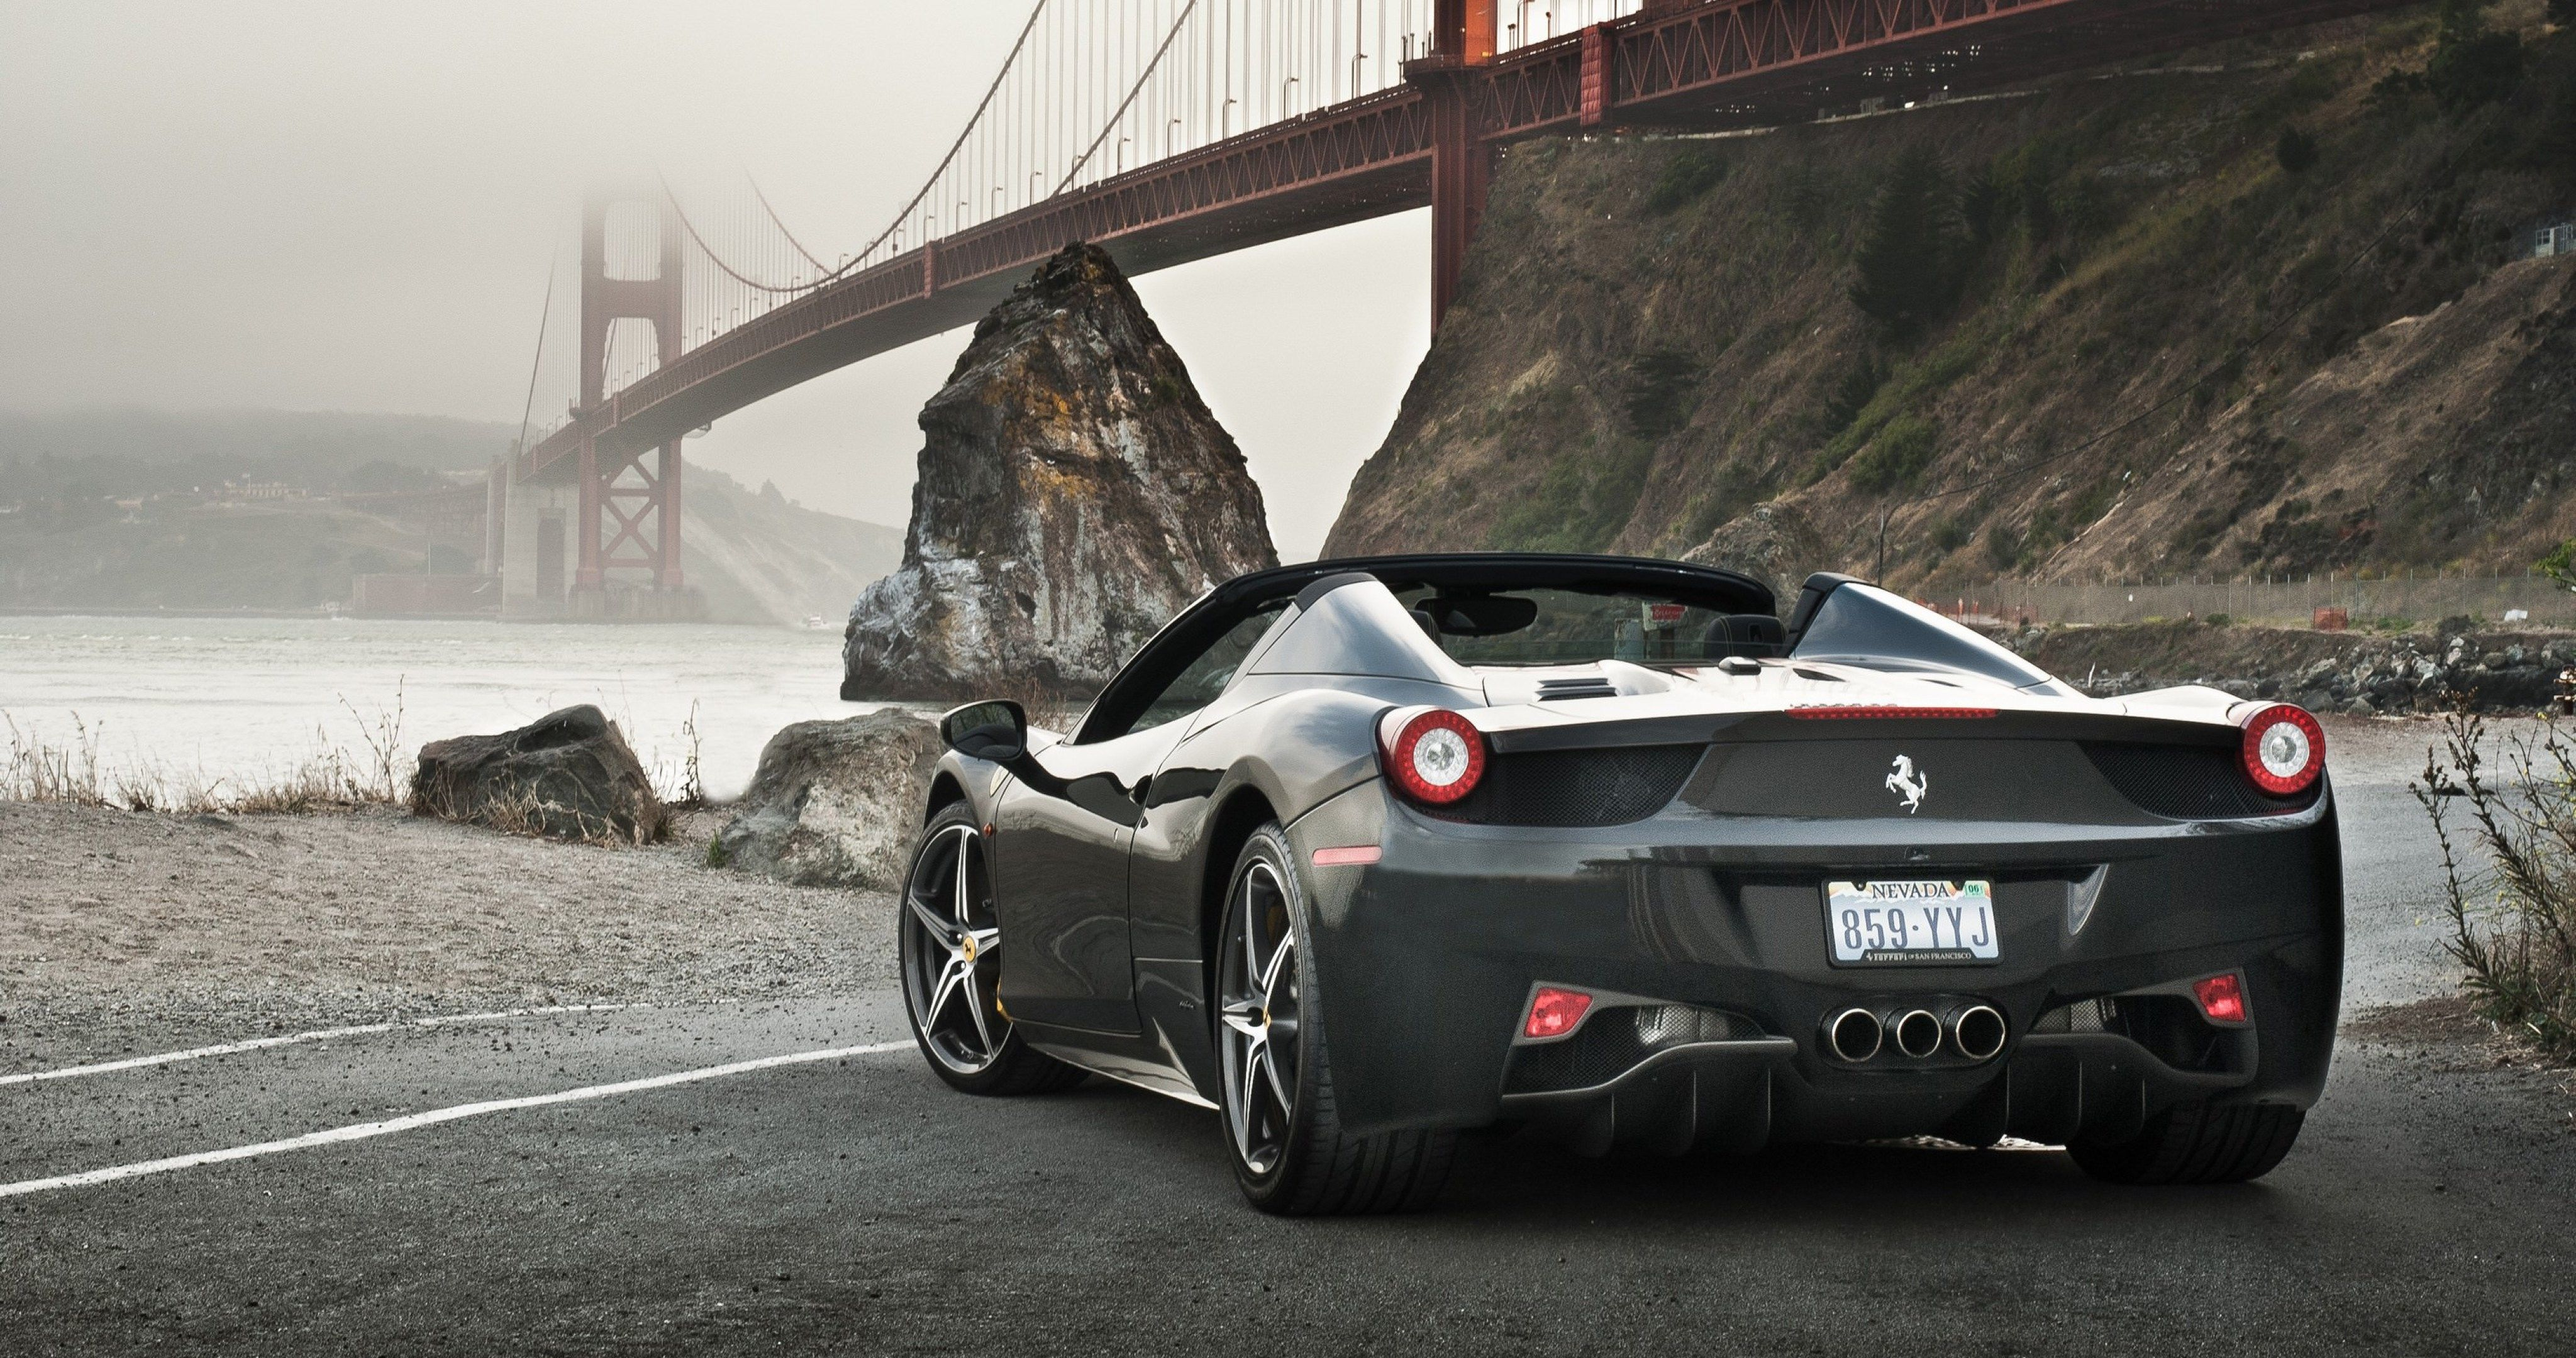 Ferrari 458 Spider Supercar 4k Ultra Hd Wallpaper Ferrari 458